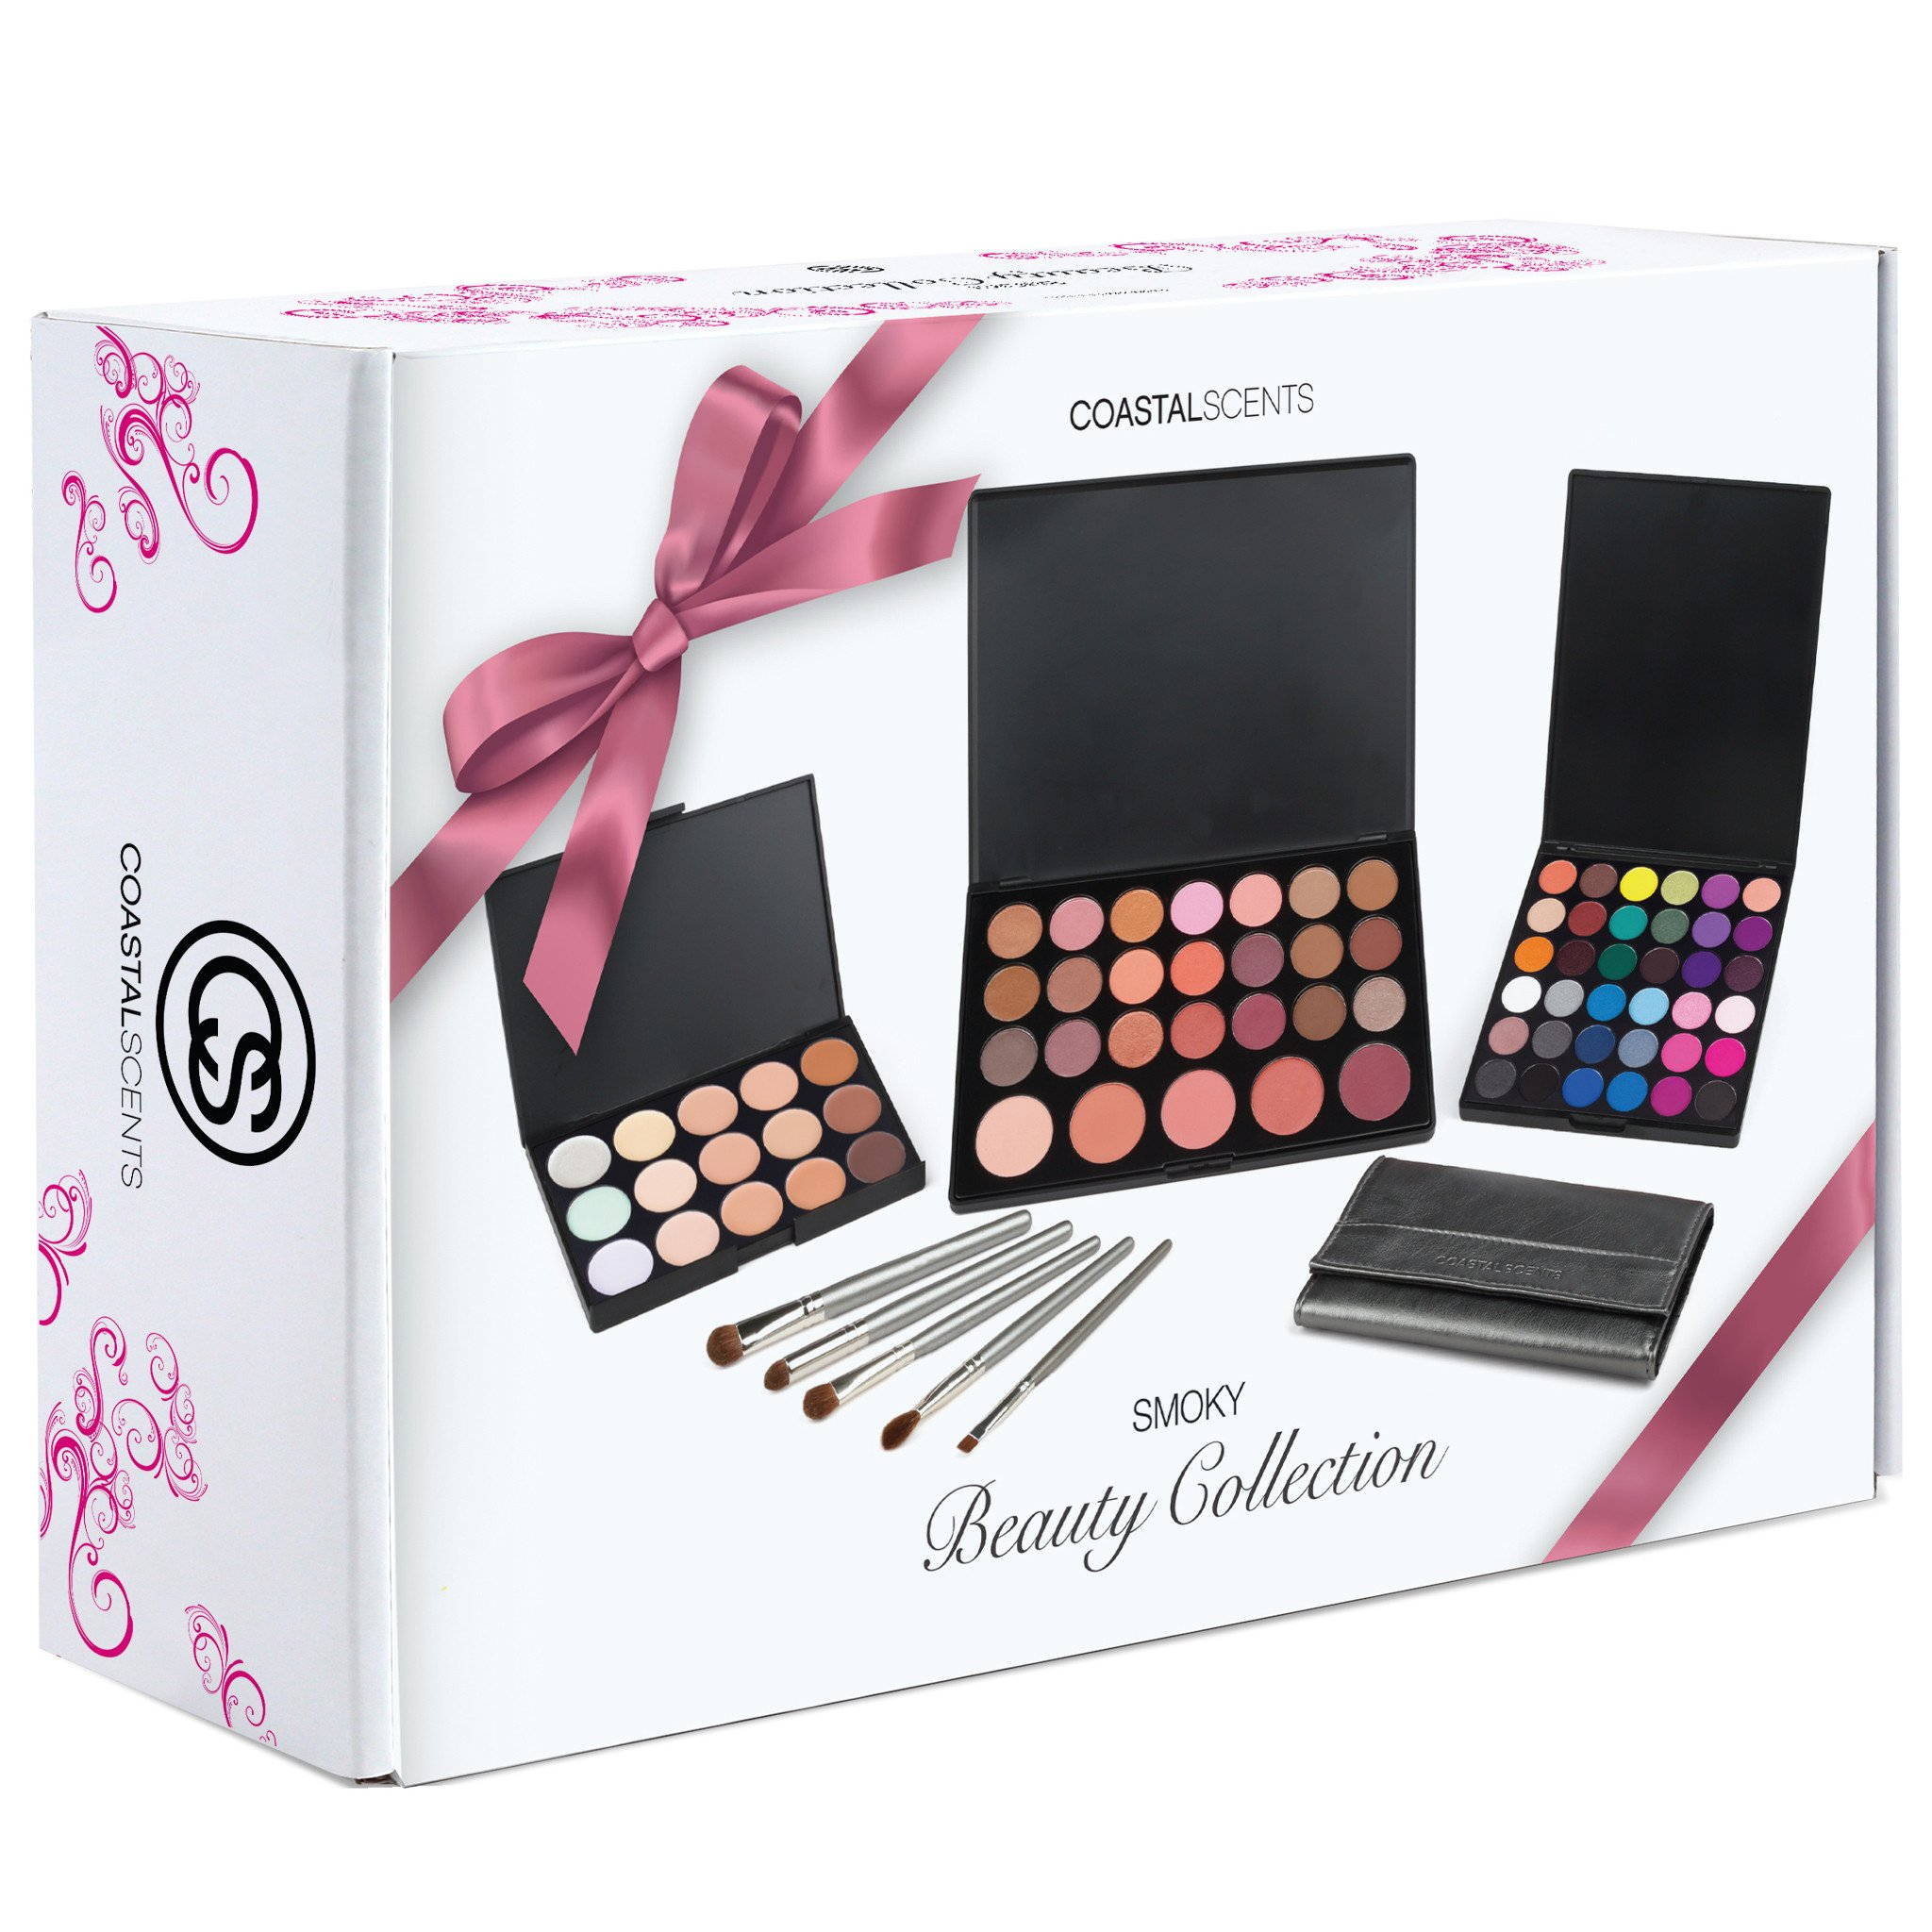 Smoky Beauty Collection Image